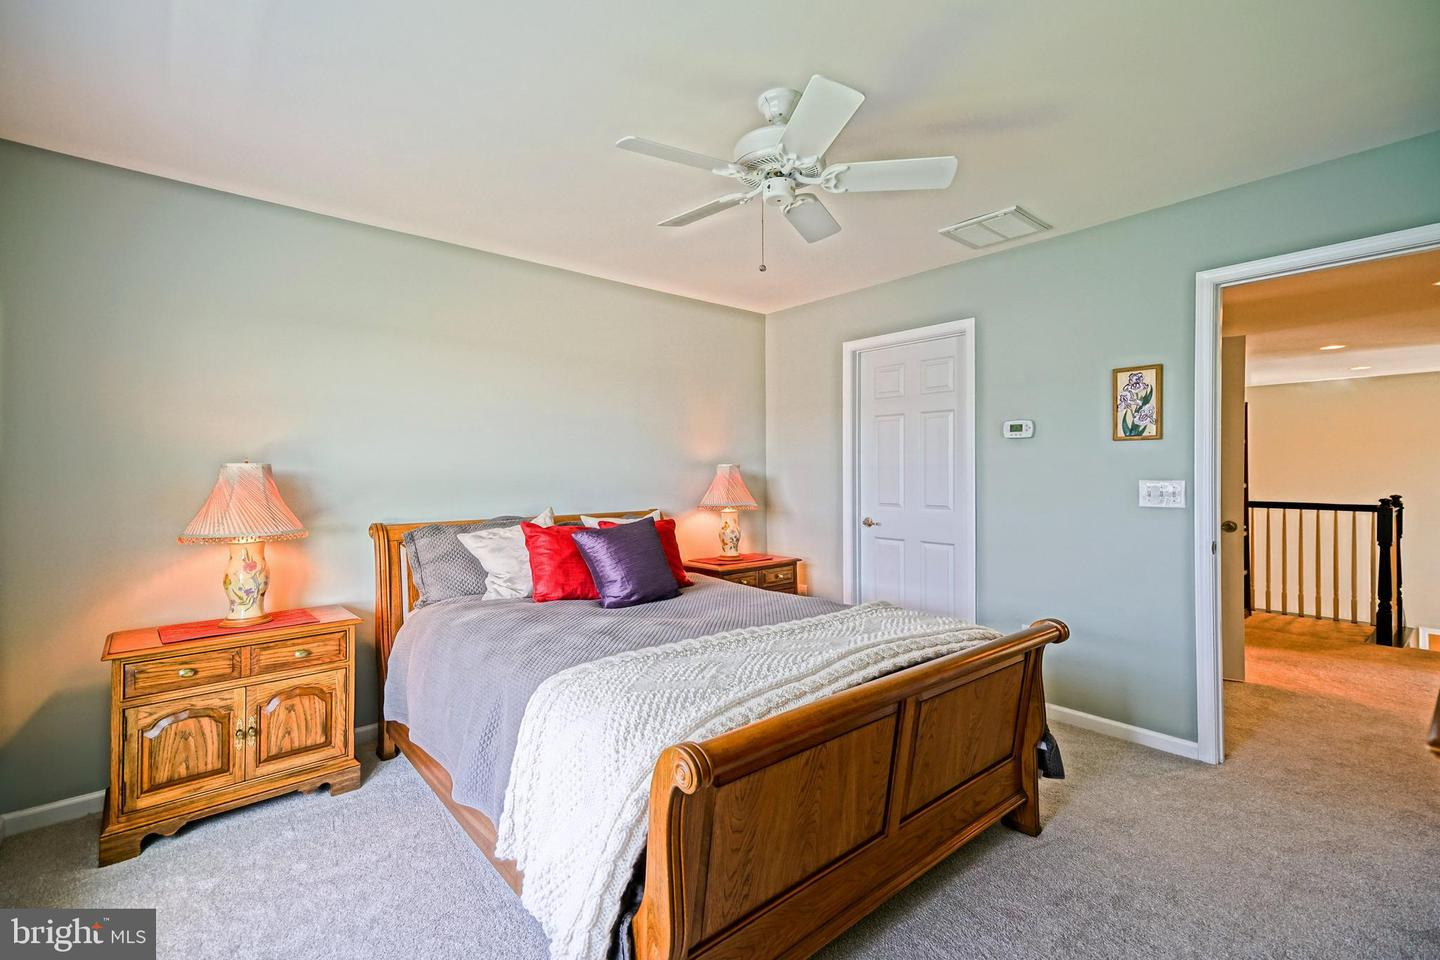 DESU139128-301667383900-2019-08-05-10-43-56 35222 Overfalls Dr N | Lewes, DE Real Estate For Sale | MLS# Desu139128  - Lee Ann Group